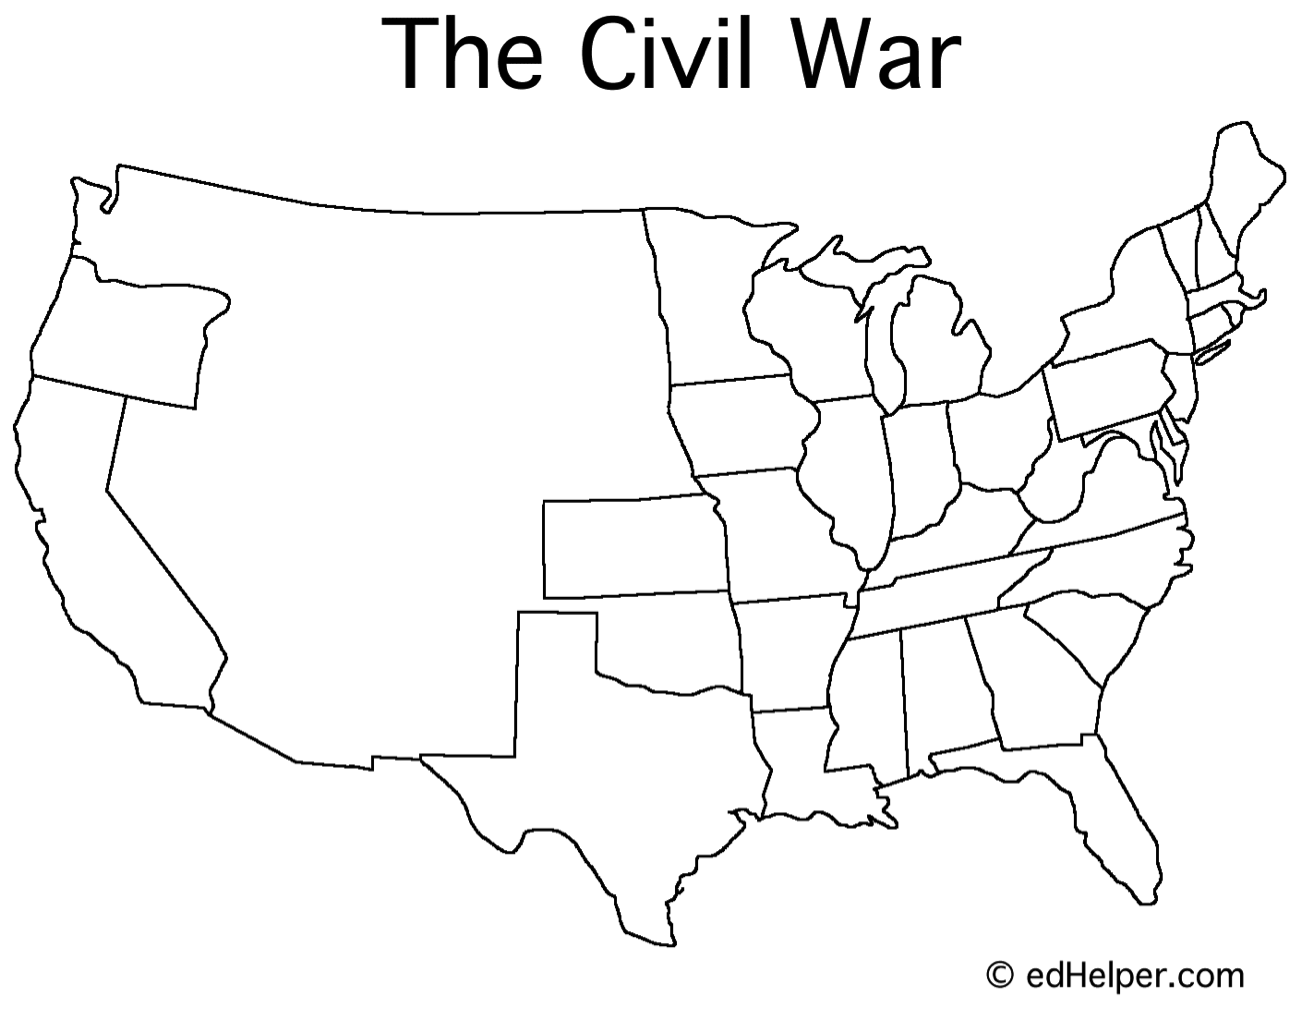 medium resolution of Pin on Civil War curriculum